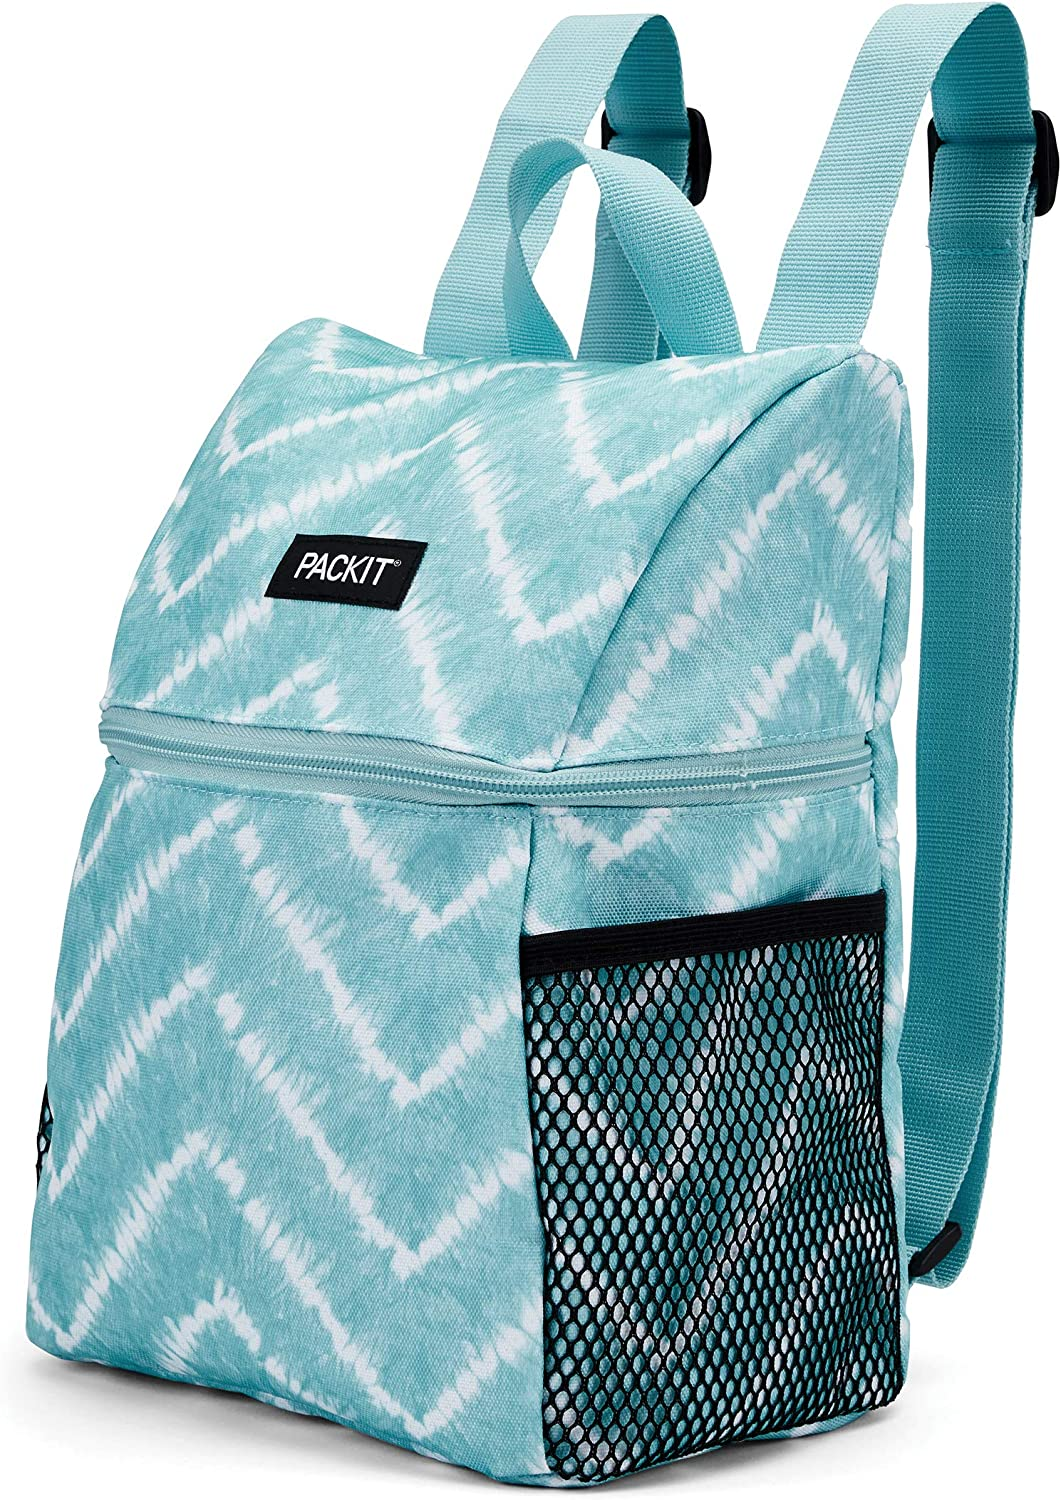 PackIt Freezable Everyday Lunch Backpack, Aqua Tie Dye